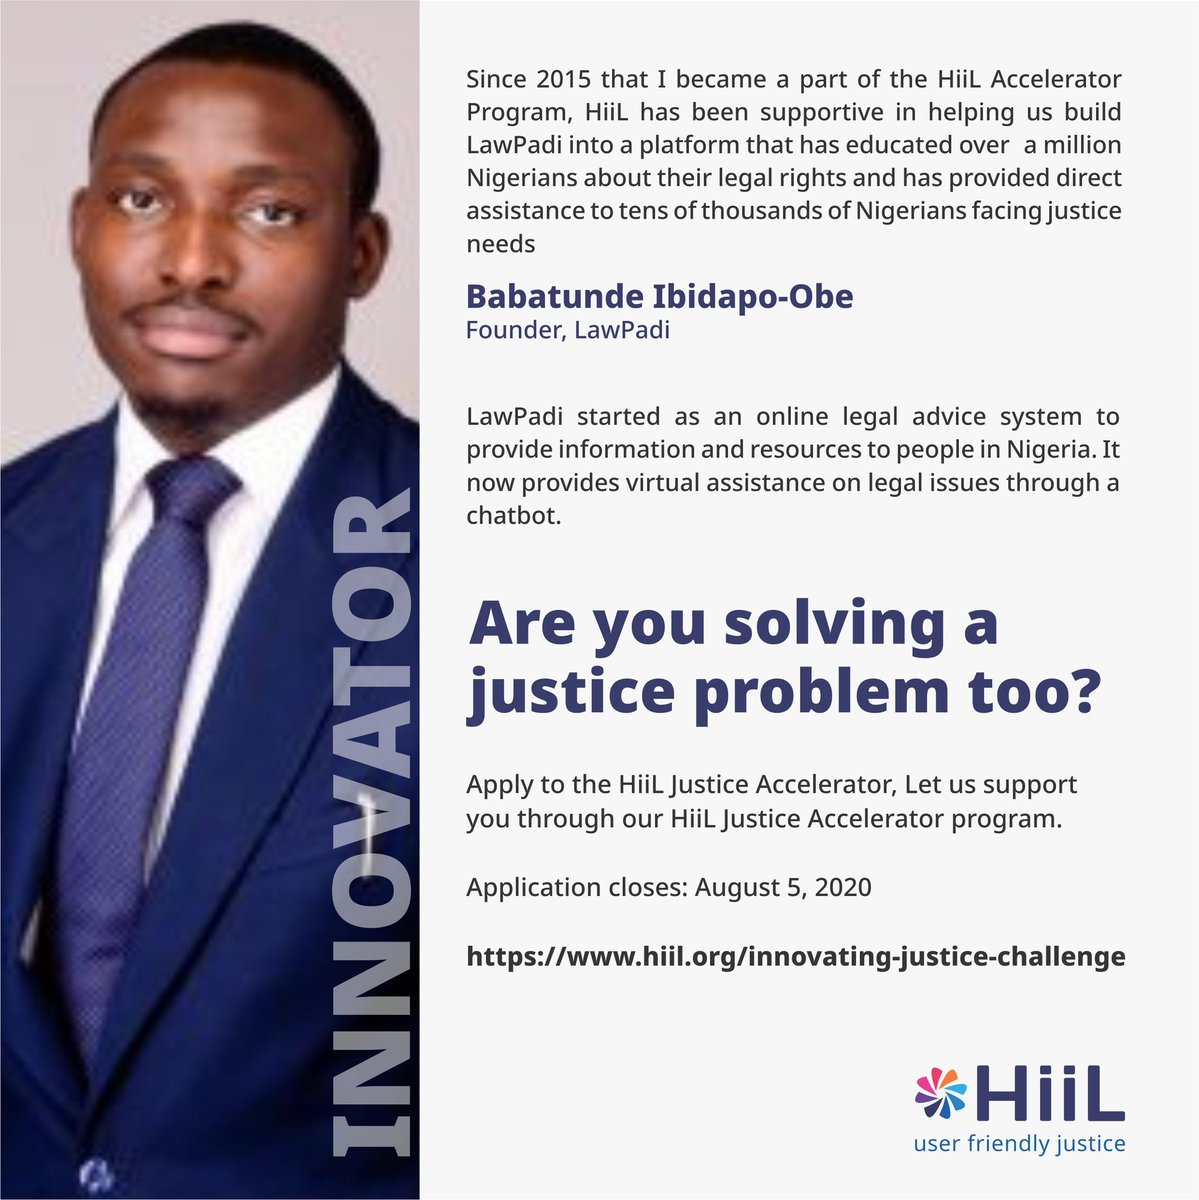 3 days to go!!!  Applied for the Hiil Innovating Justice Challenge or yet to complete your application?  Applications close by August 5.  Apply here: https://t.co/Y9er7Mk5Be  #justinnovate #innovatingjusticechallenge2020 #accesstojustice #SDGs #SDG16 https://t.co/wzaxAReP4k